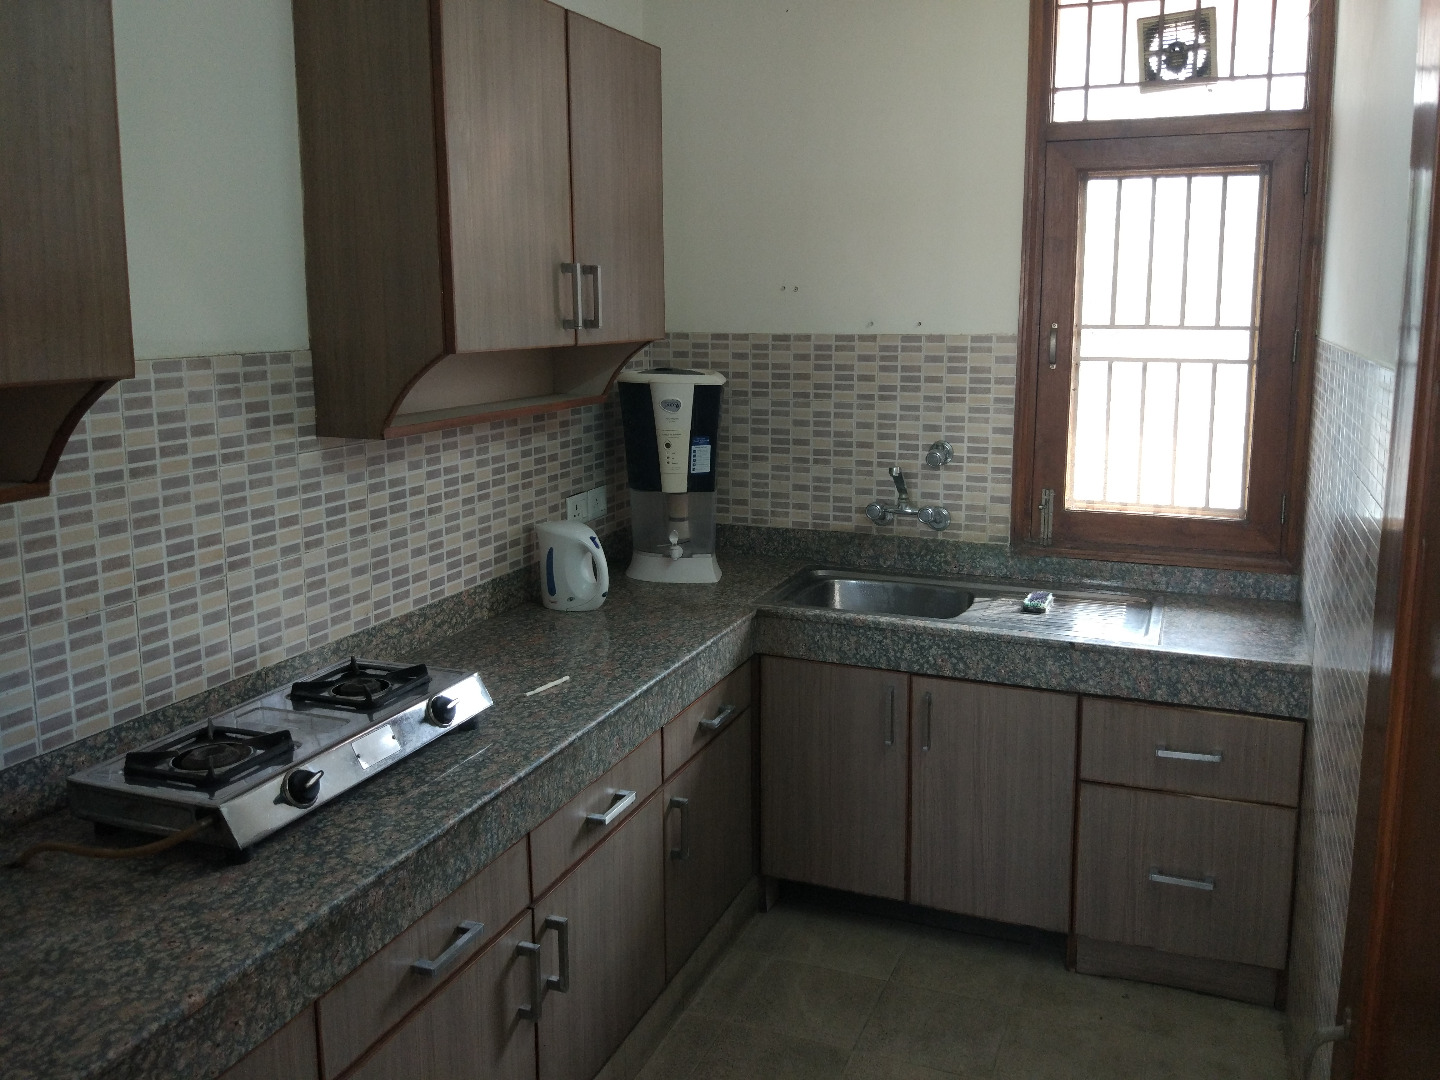 1BHK Flat for rent in Sector 43, Gurgaon